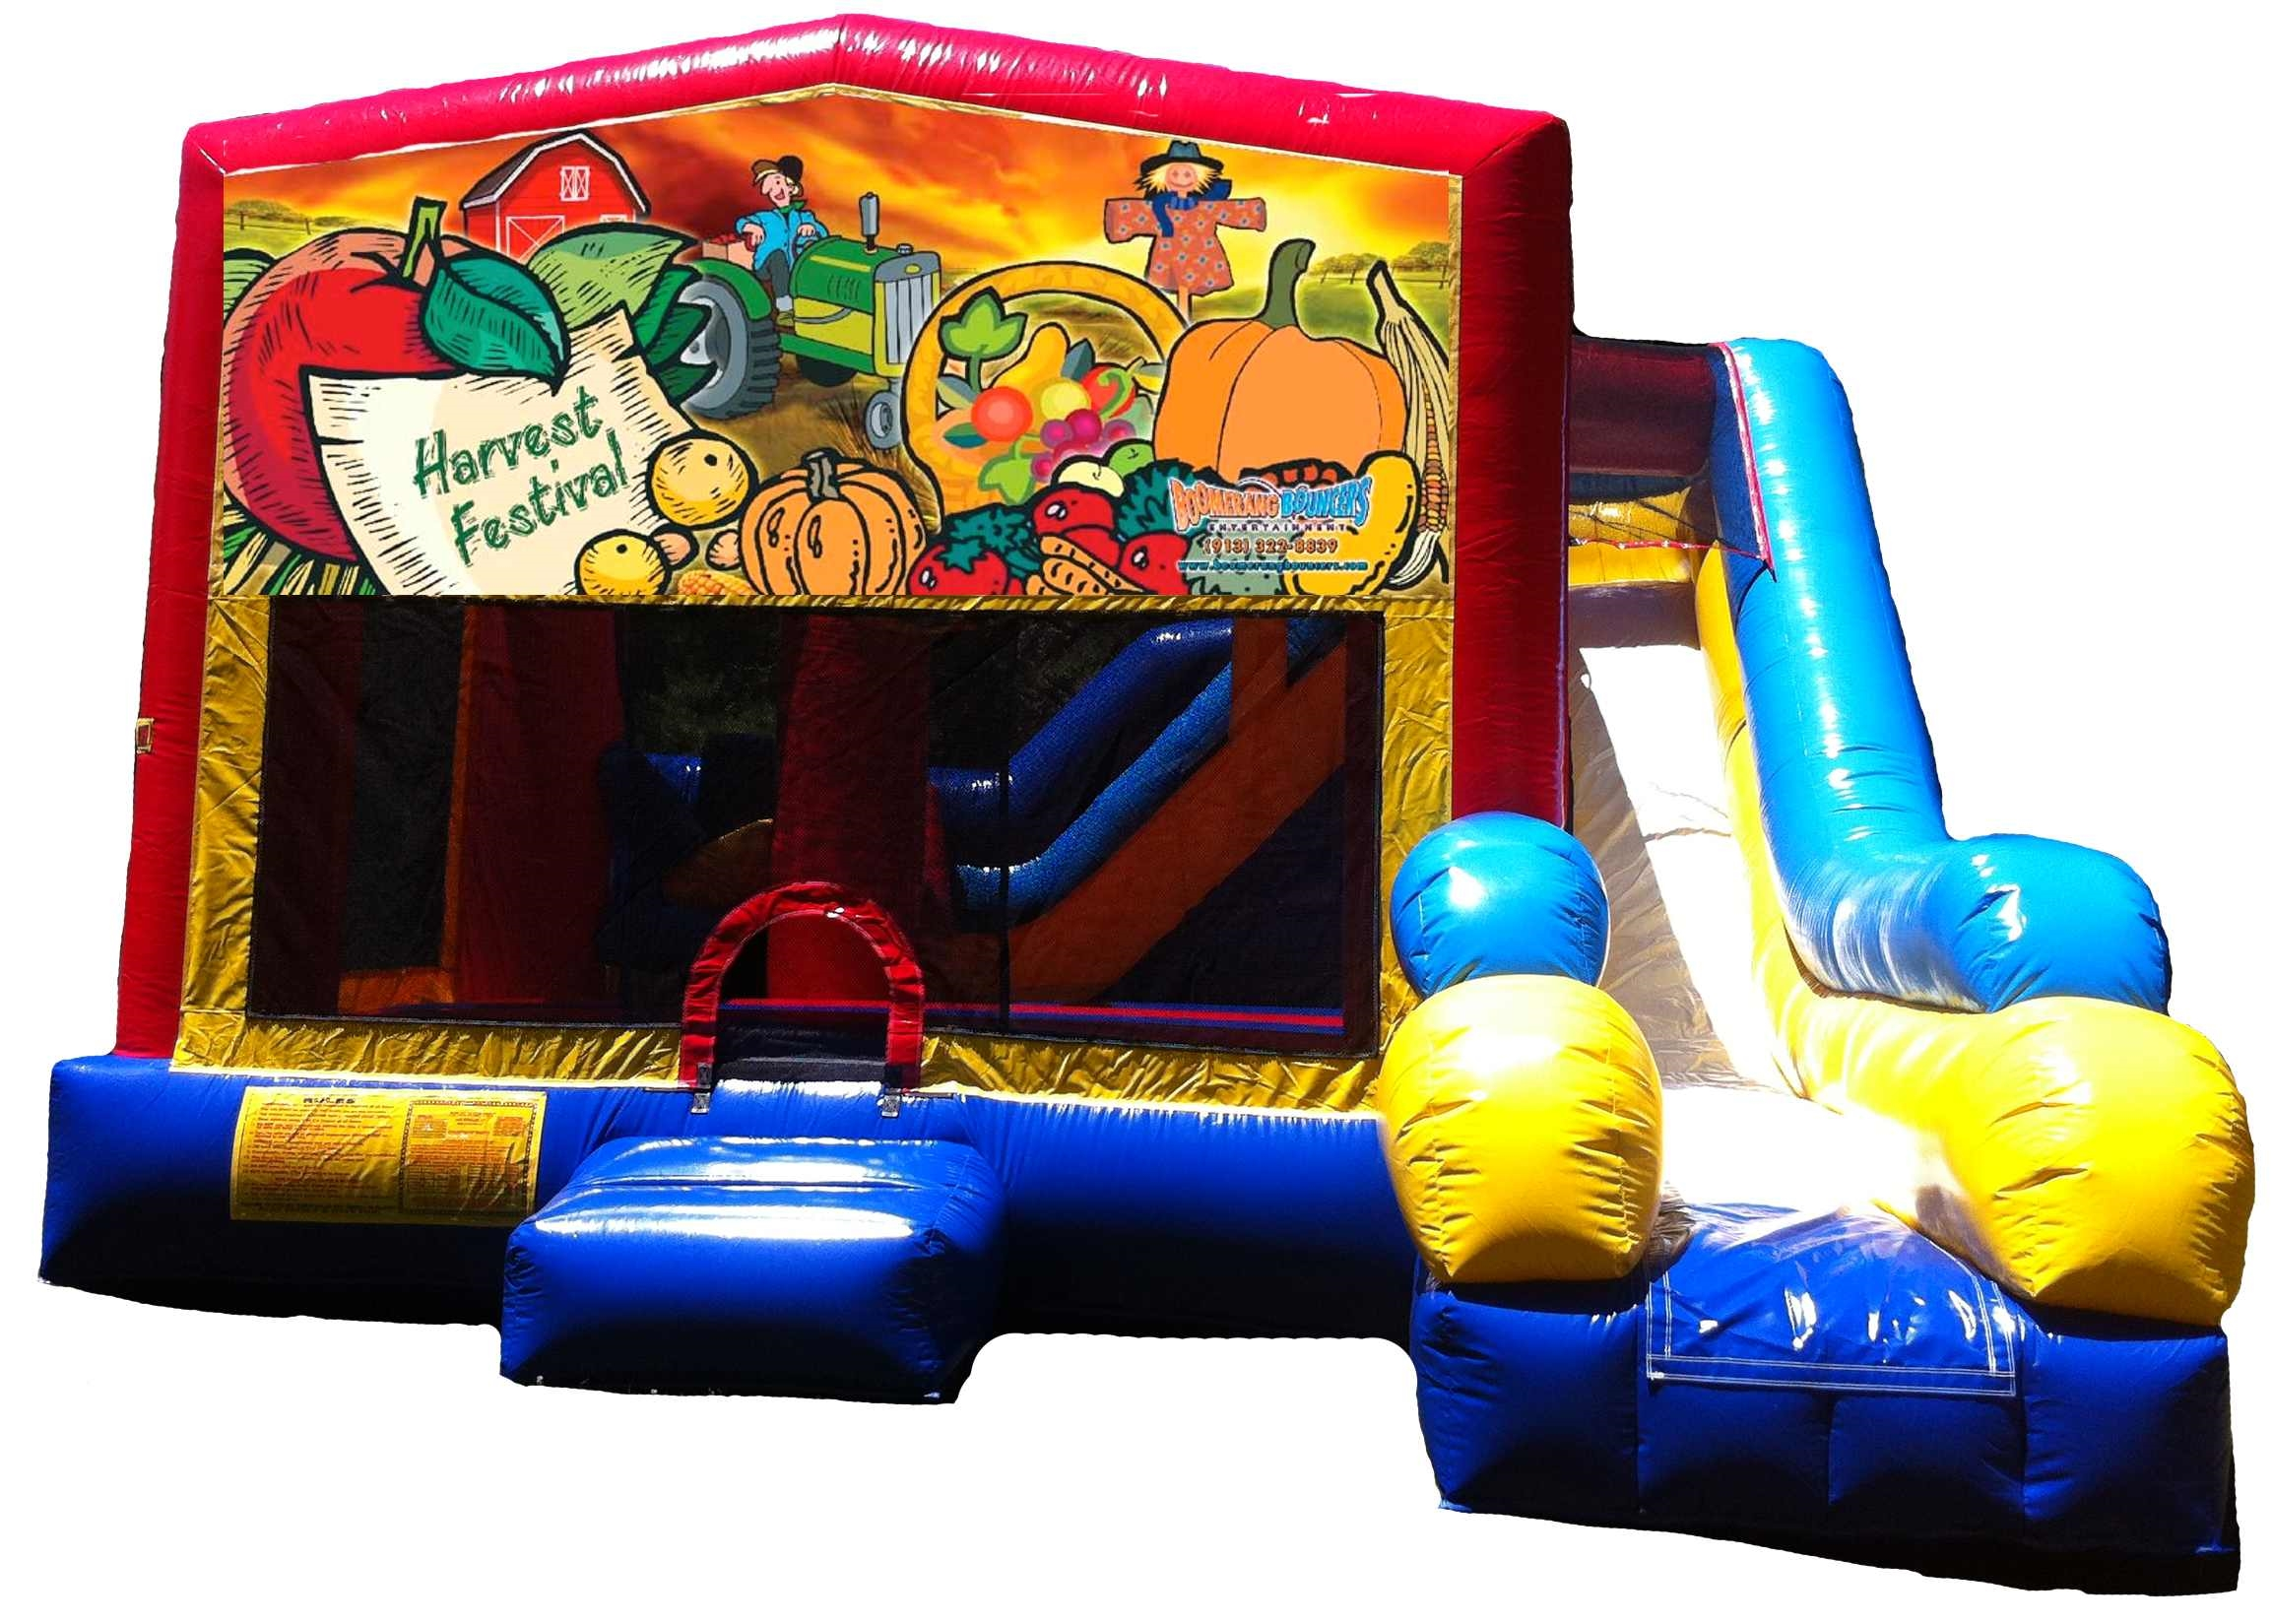 Fall Festival 5-in-1 C7 Combo Bouncer